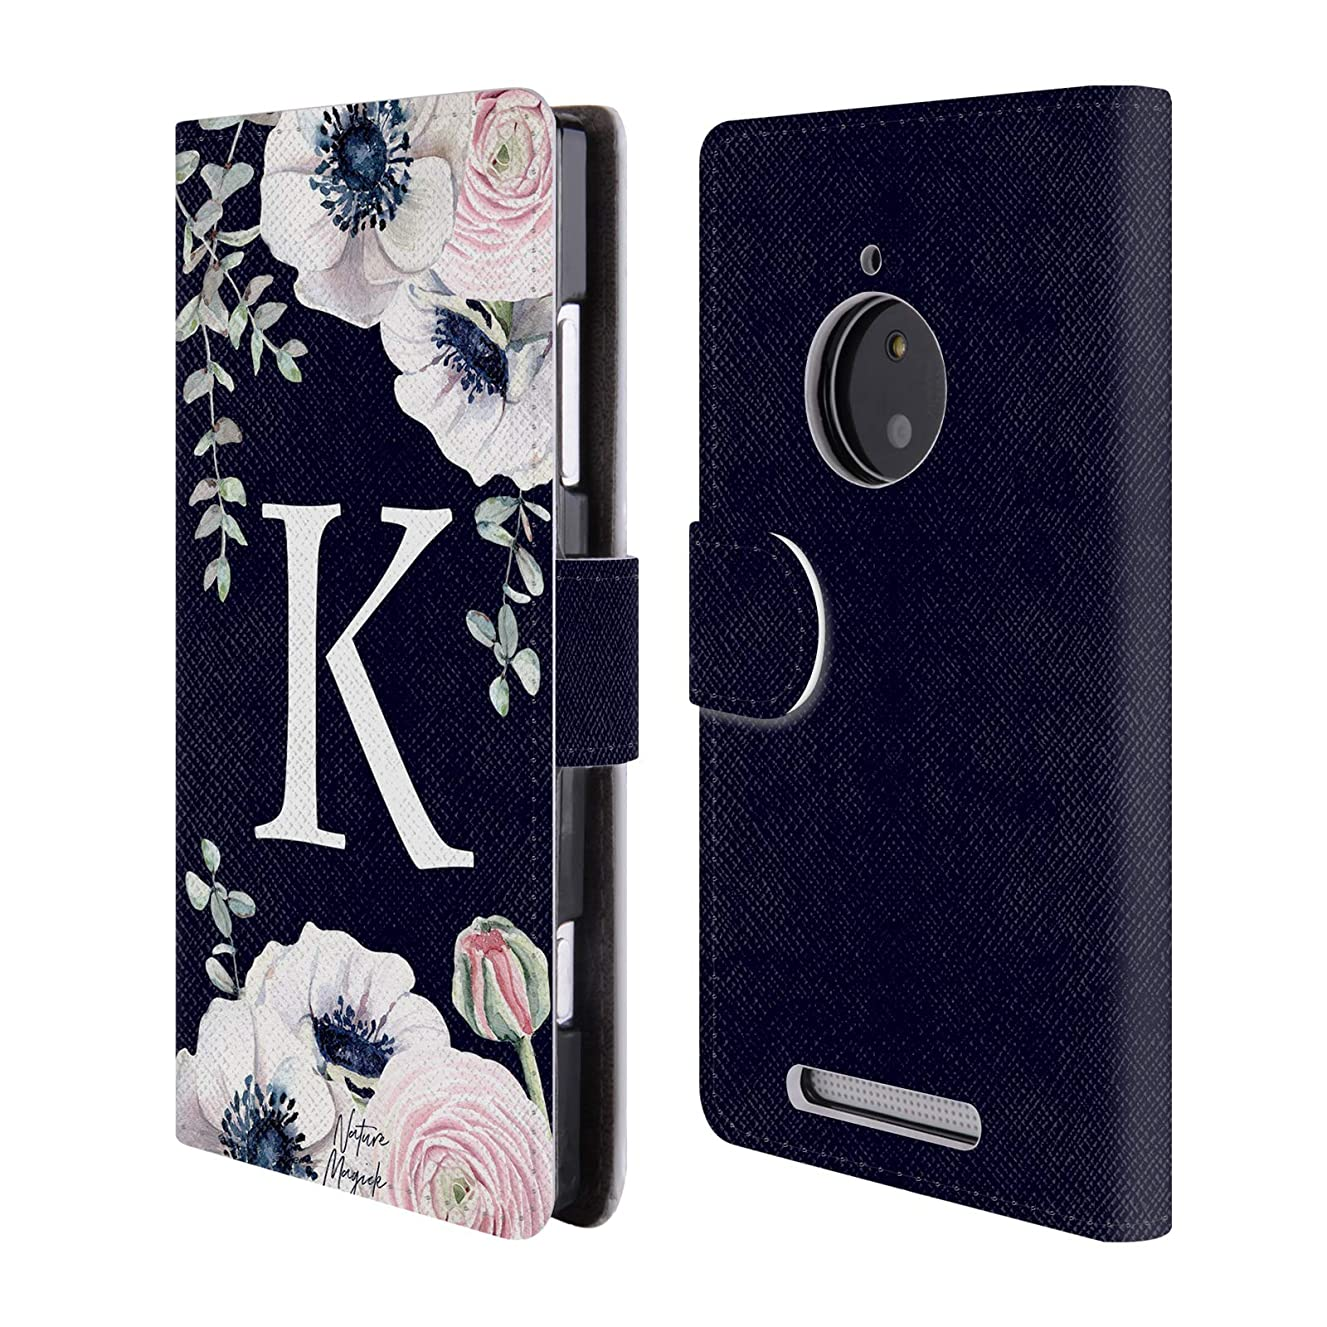 Official Nature Magick Letter K Watercolour Flower Monogram 1 Leather Book Wallet Case Cover for Nokia Lumia 830